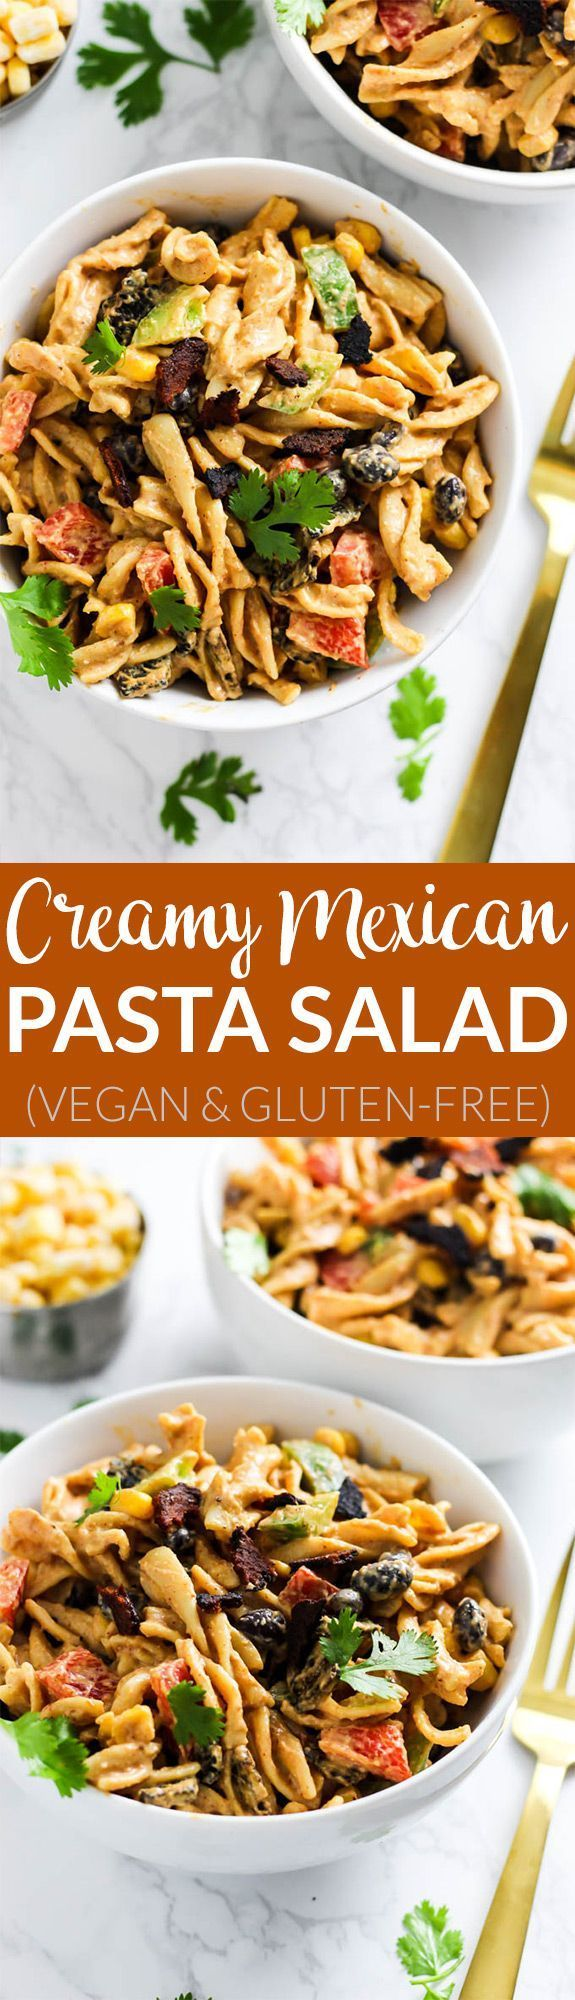 This Creamy Vegan Mexican Pasta Salad is packed with spicy flavor, vegetables and healthy fats to satisfy you at meal time. Only 30 minutes of prep time! /sweetearthfoods/ #ad #sweetearth